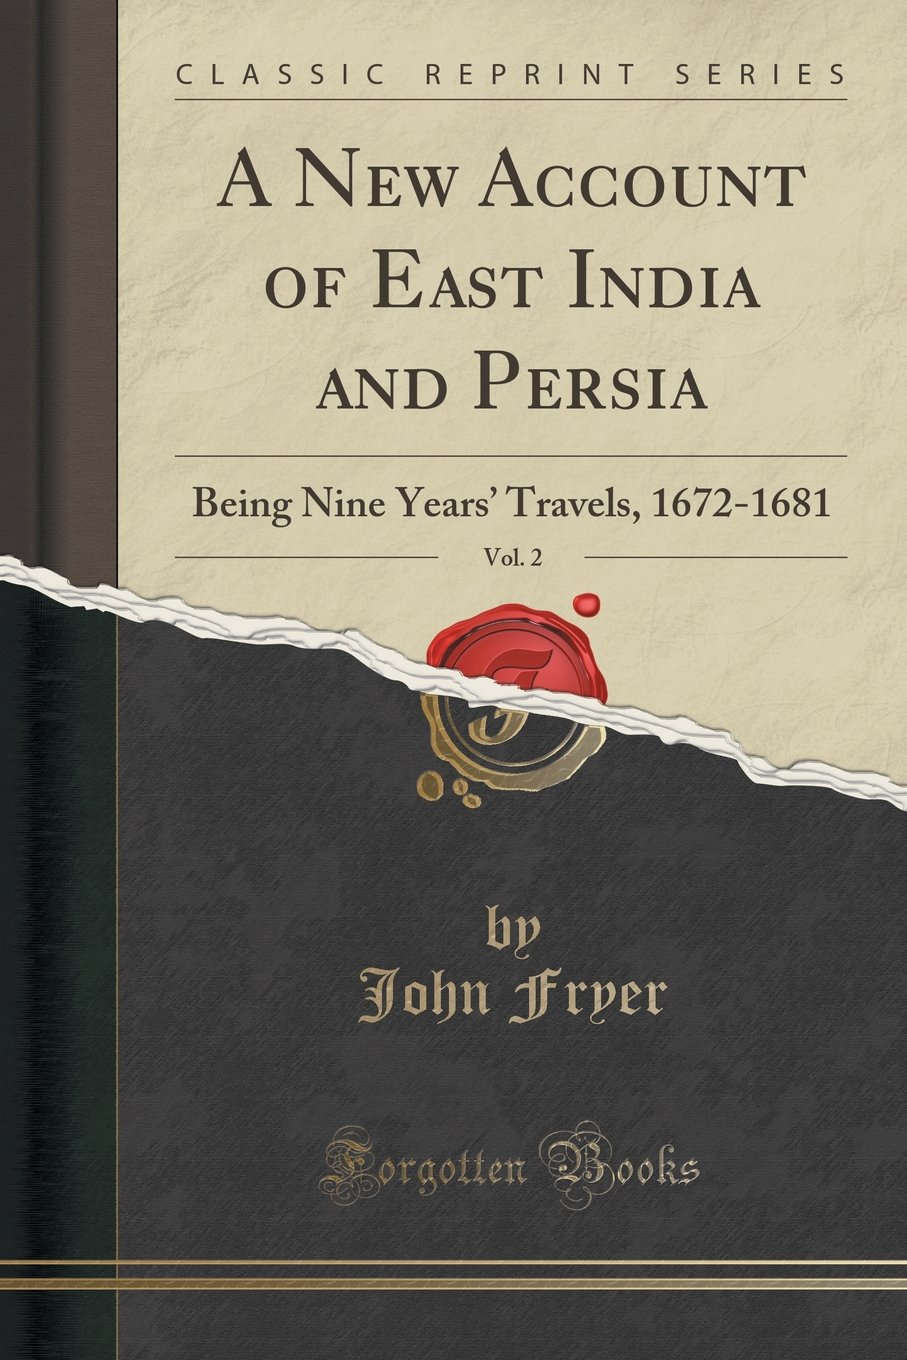 A New Account of East India and Persia, Vol. 2: Being Nine Years' Travels, 1672-1681 (Classic Reprint) pdf epub